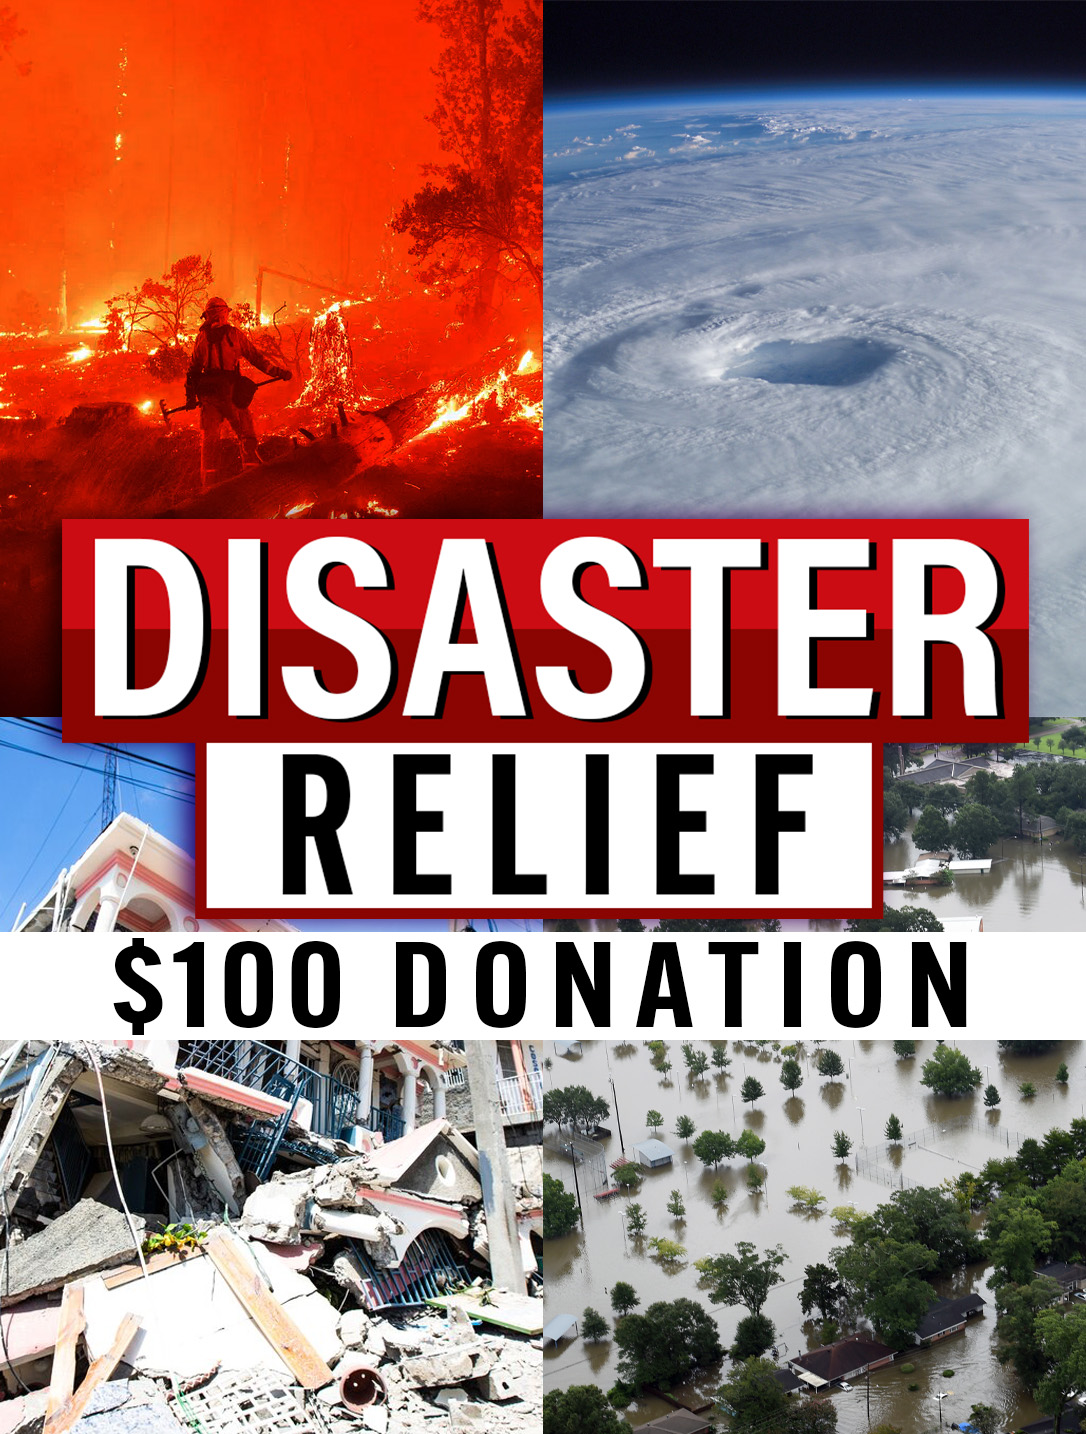 Disaster Relief Donation $100